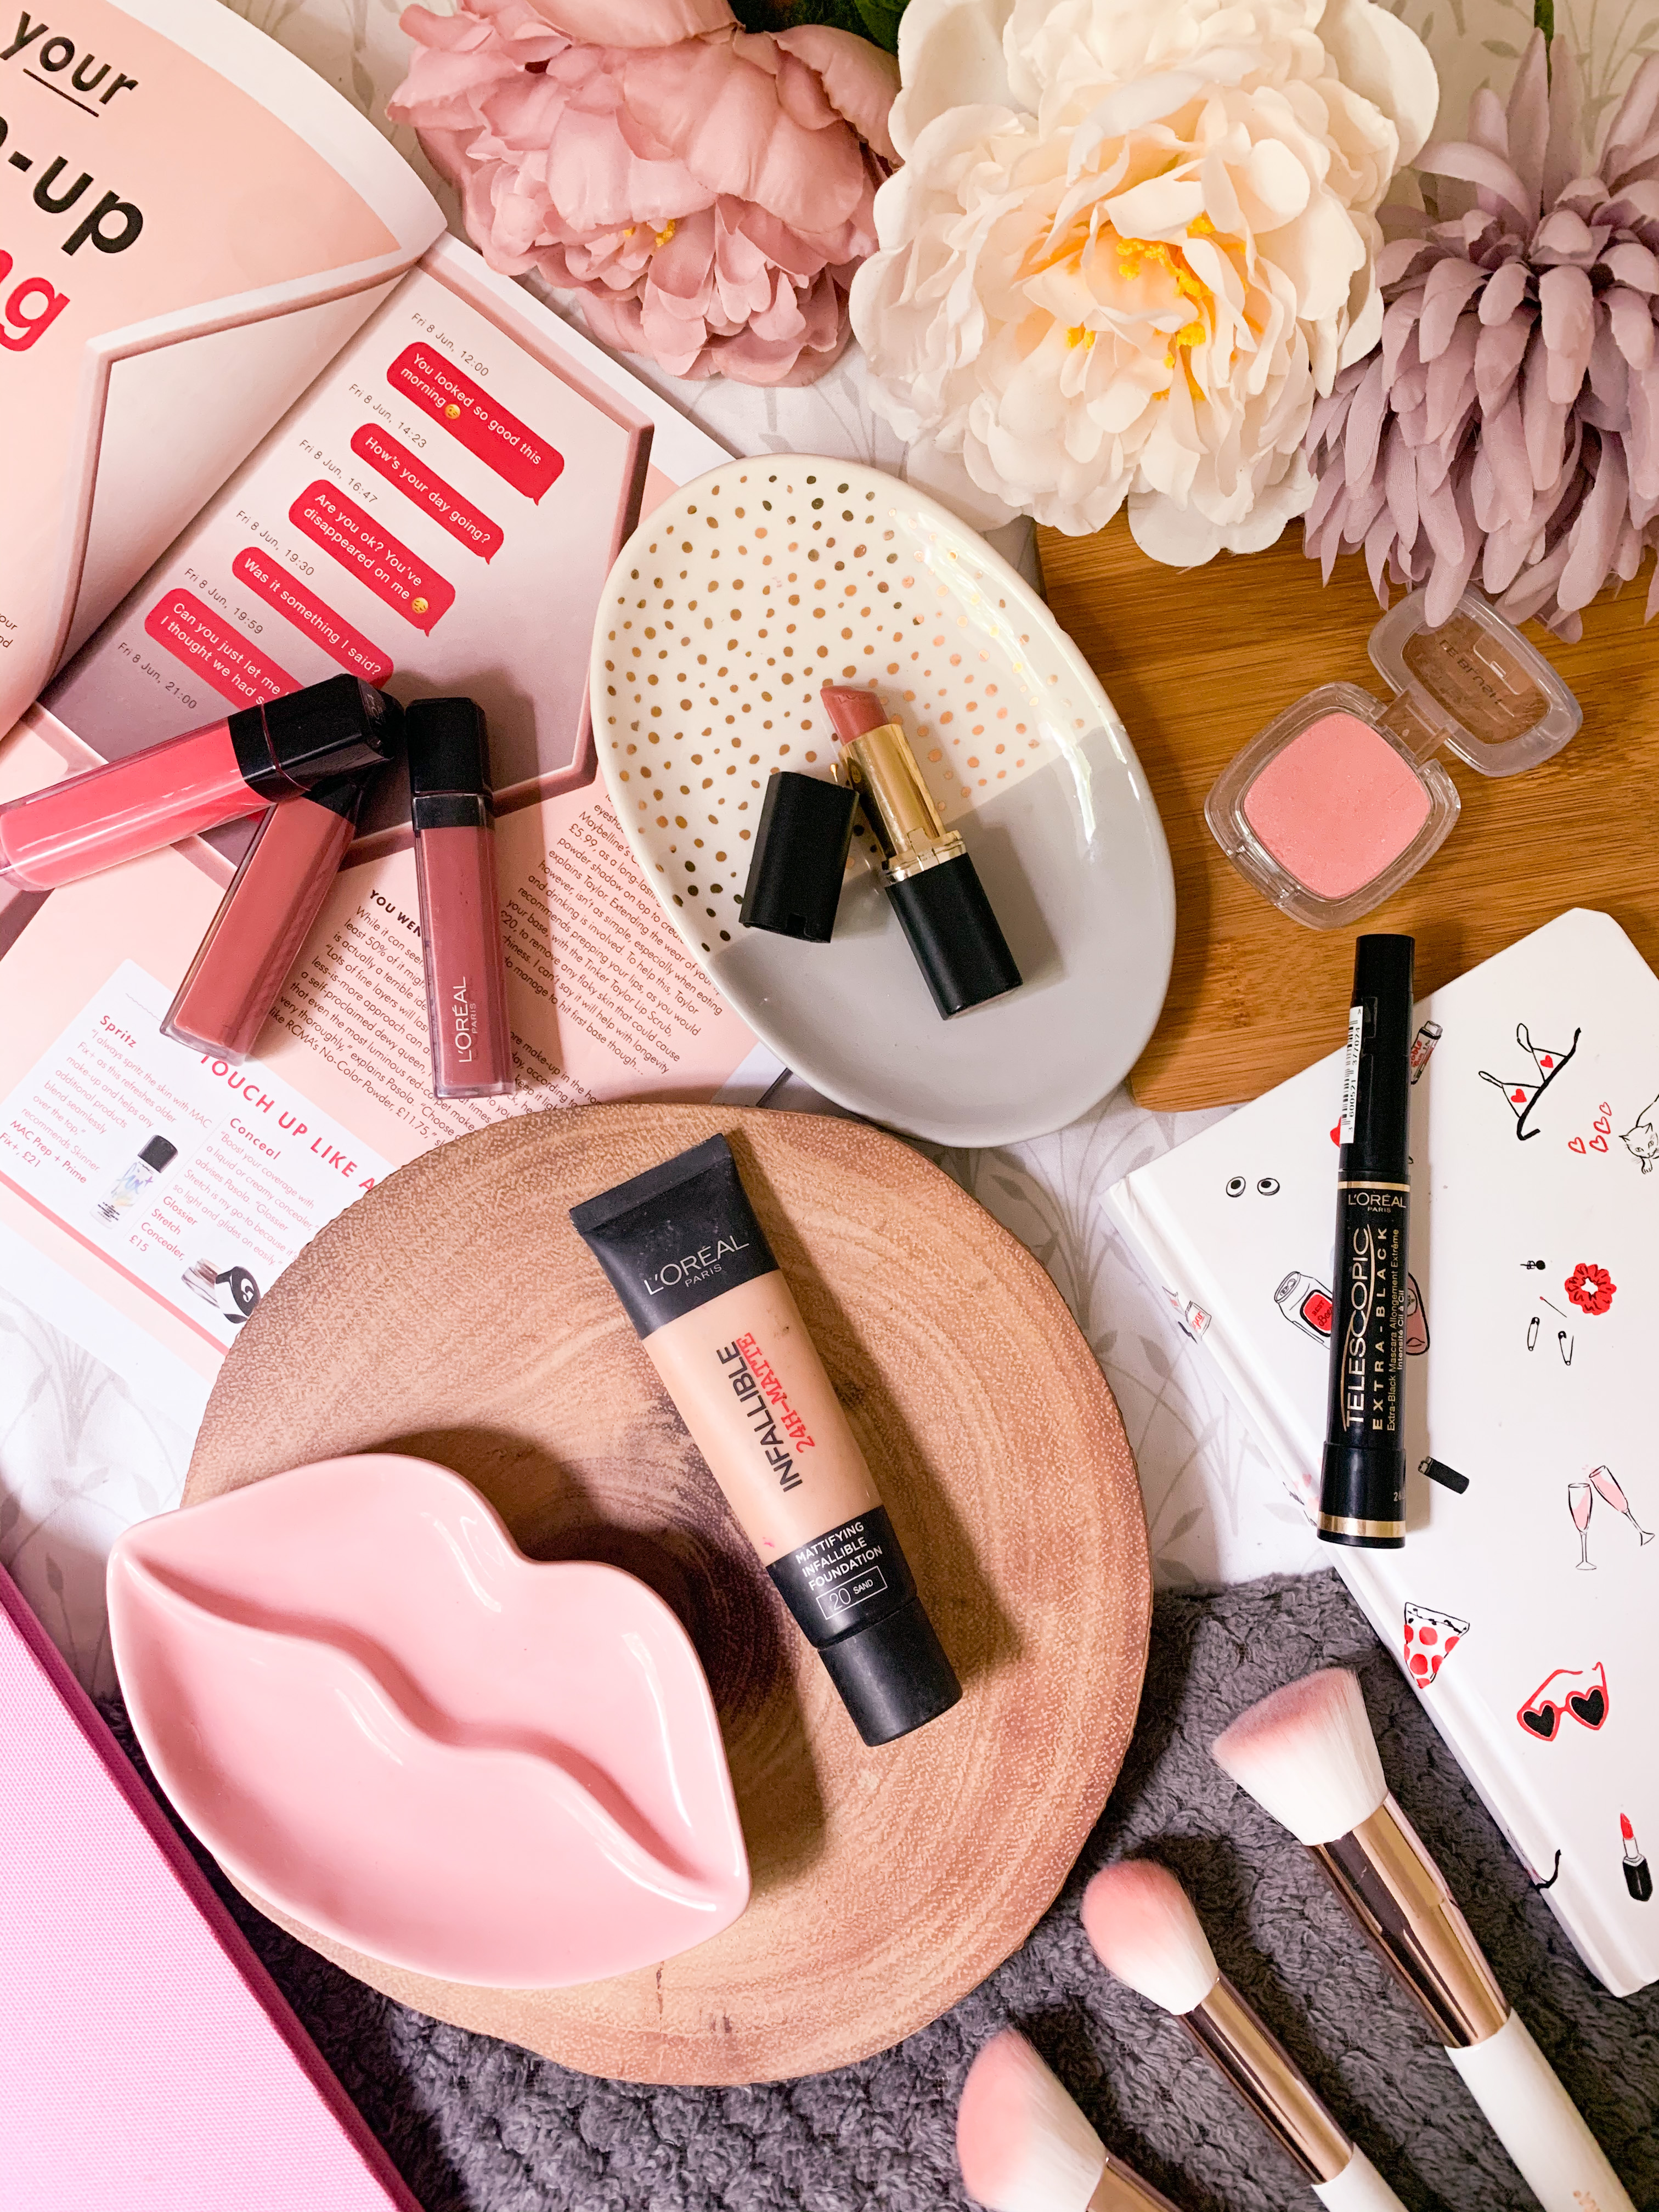 L'Oreal Brand Favourites Flatlay